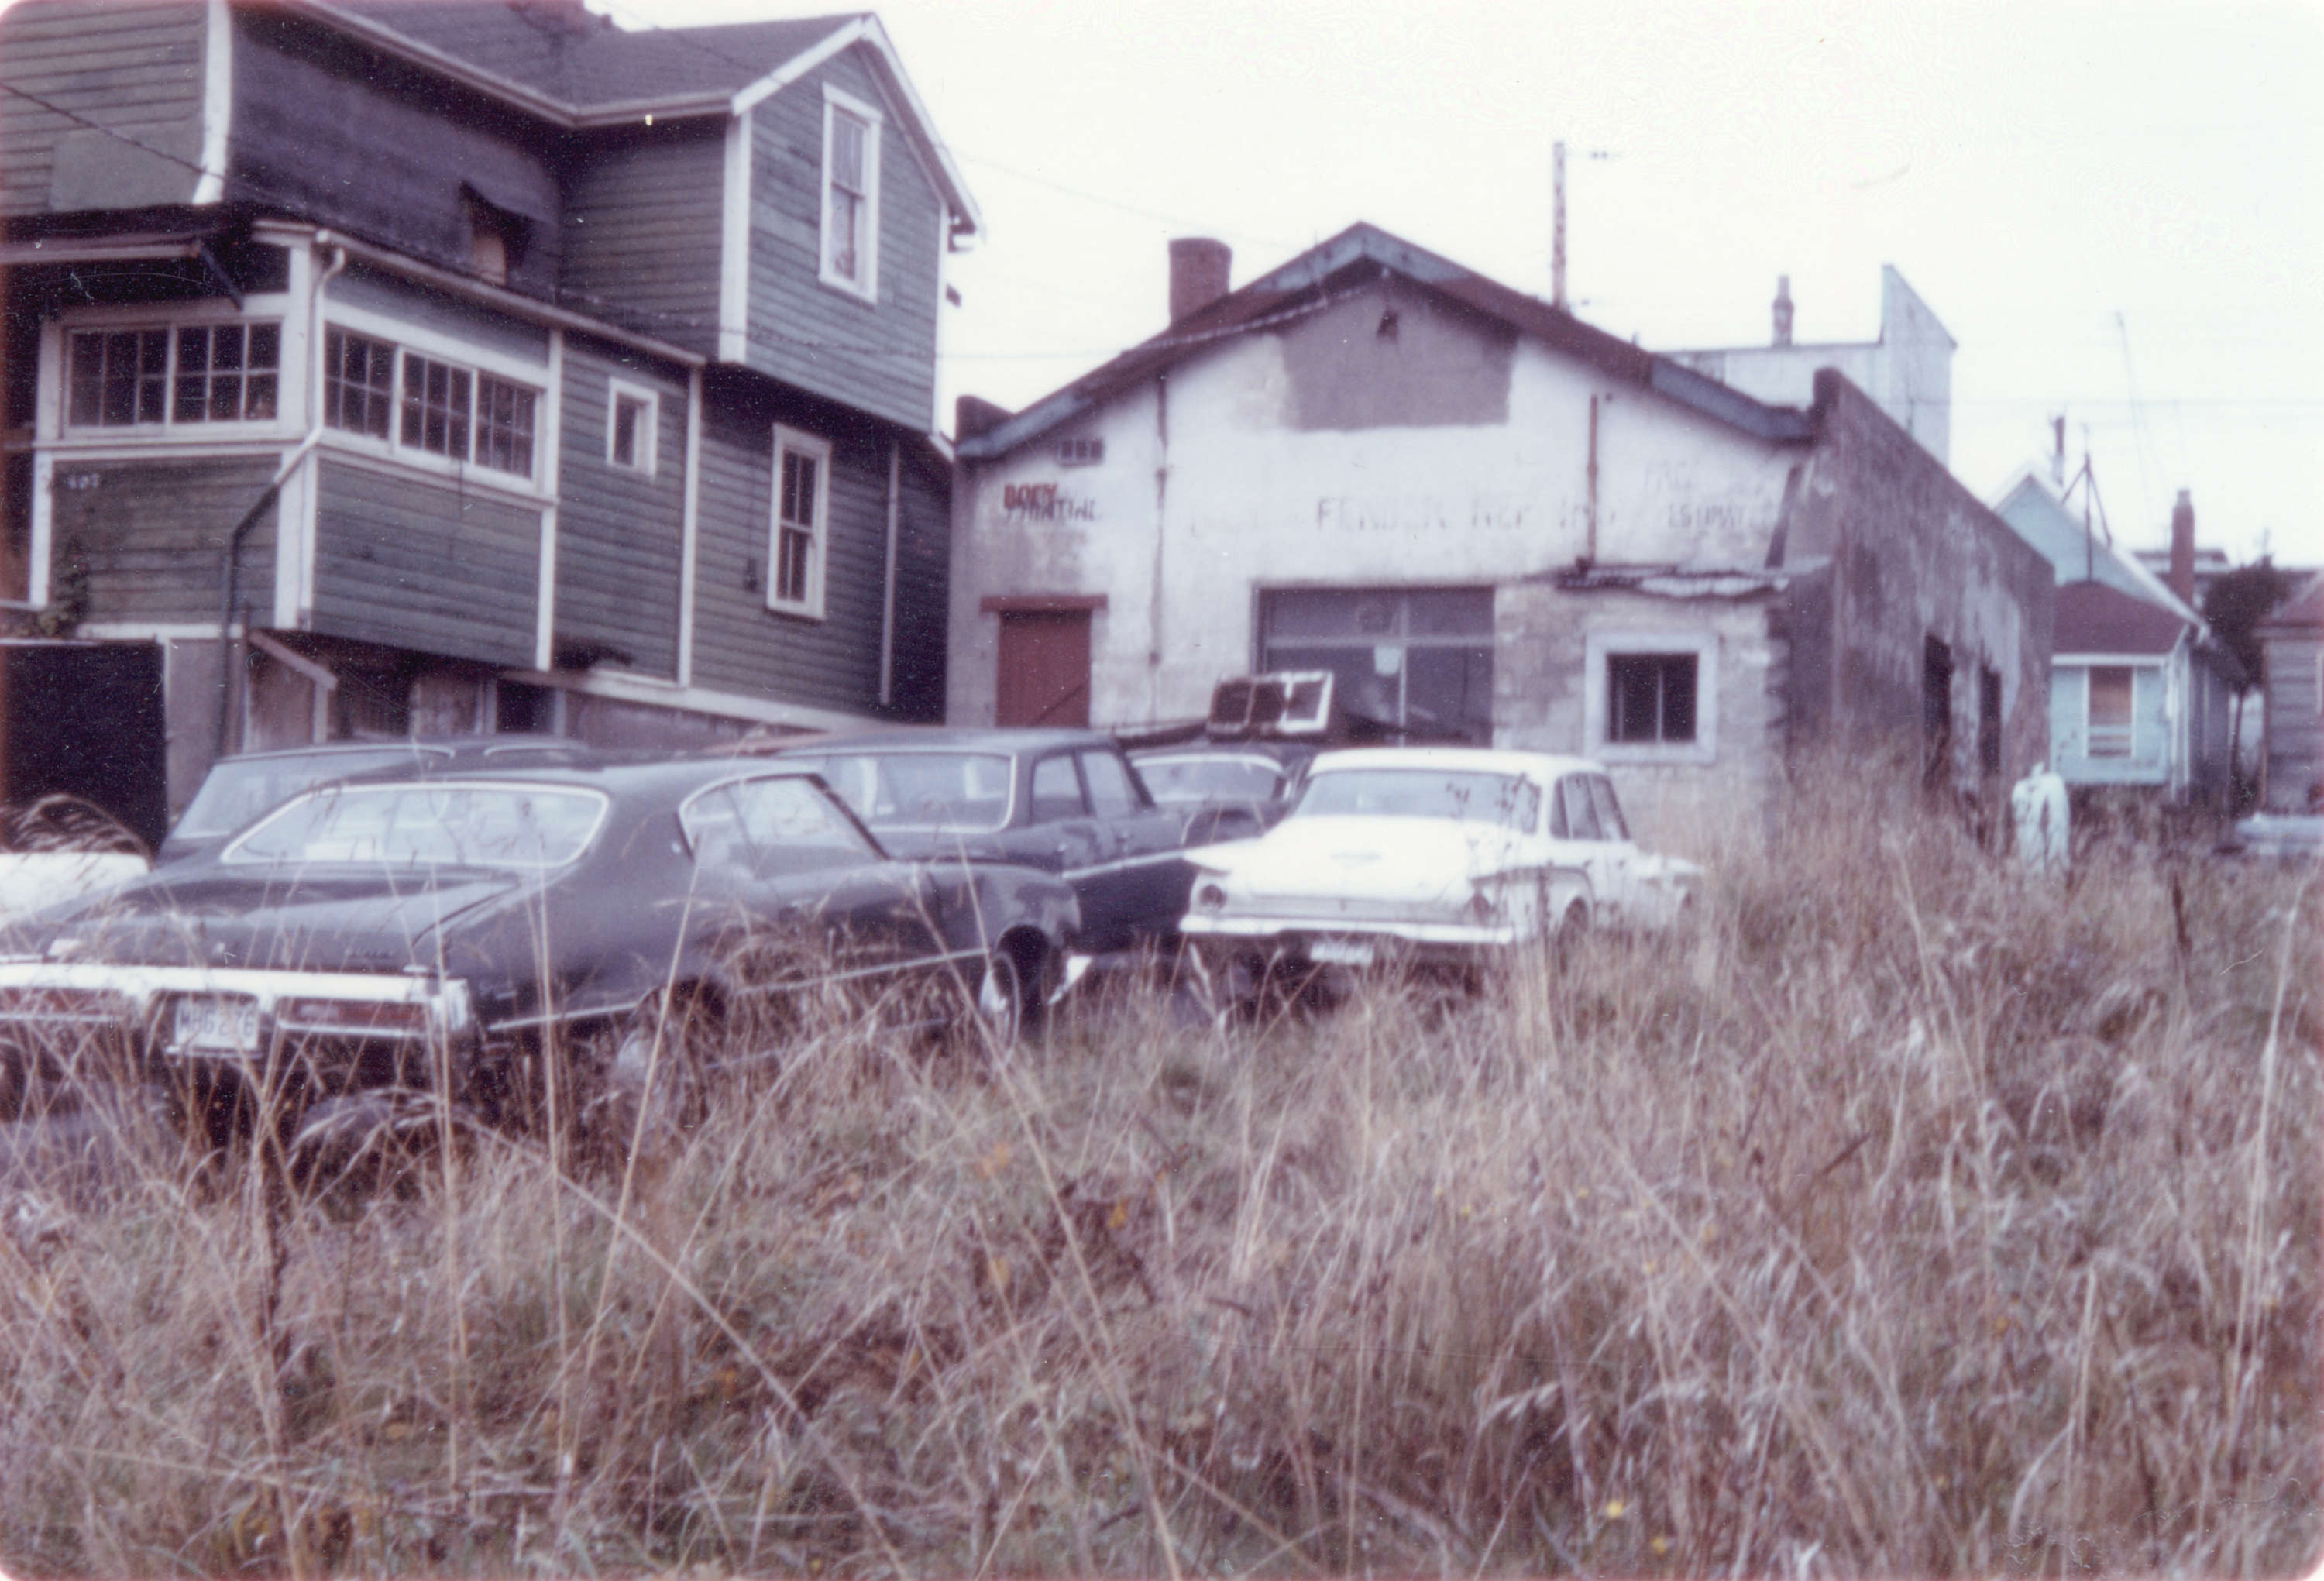 413 Prior St in Hogan's Alley, 1973, Vancouver, B.C.